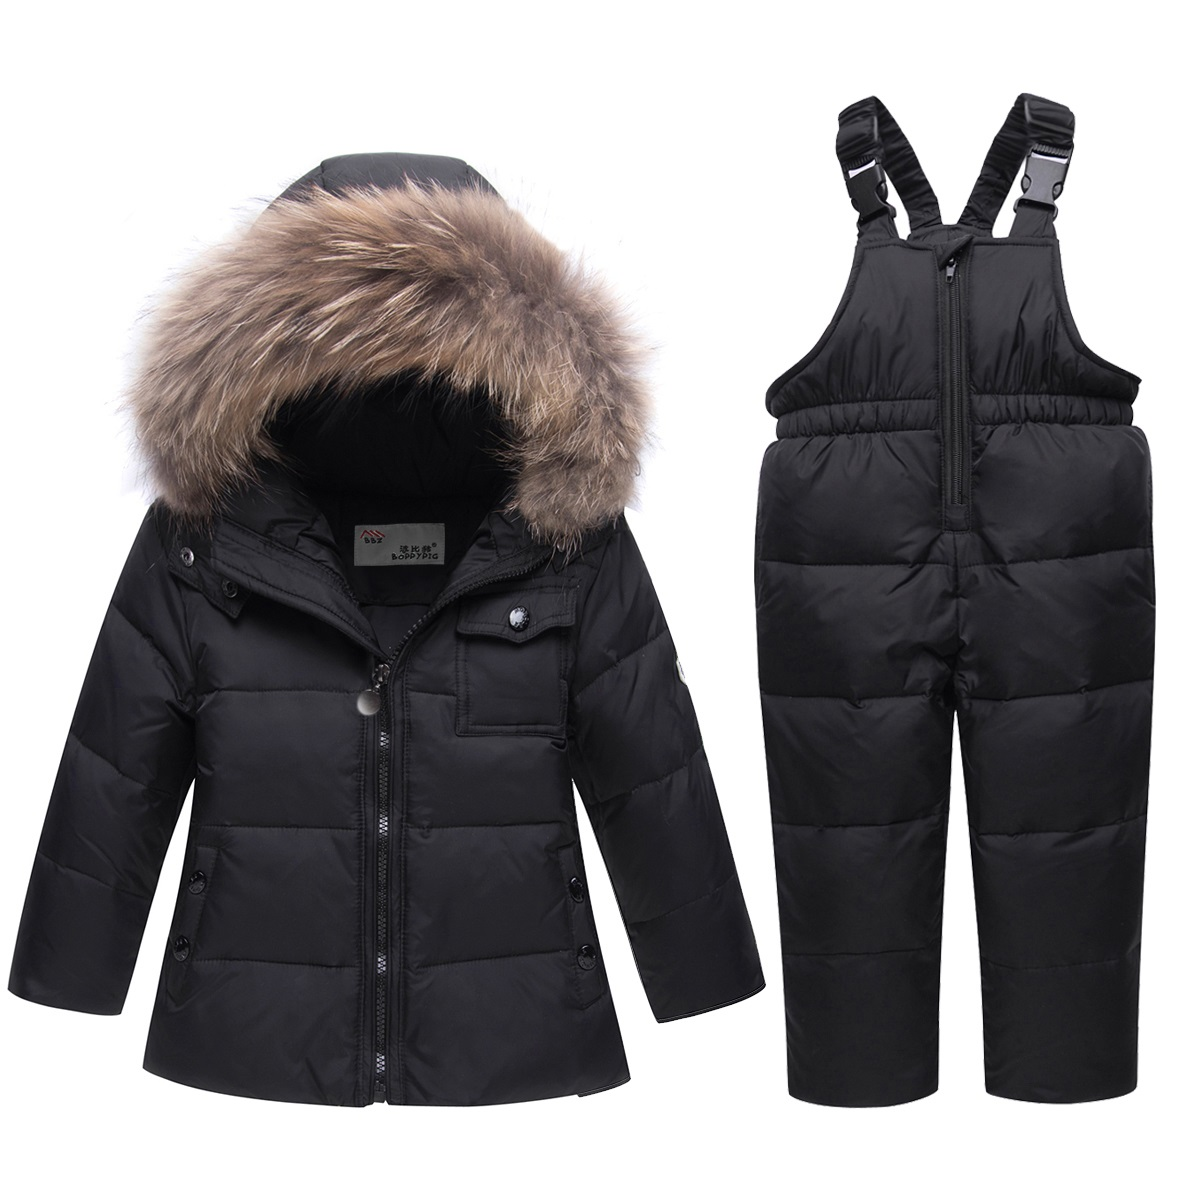 все цены на ZOETOPKID -30 Degree Winter children Boy Clothes set Warm Down Jacket Coat + Jumpsuit For Girl 1-5 Years Kids Baby Girl Snowsuit онлайн